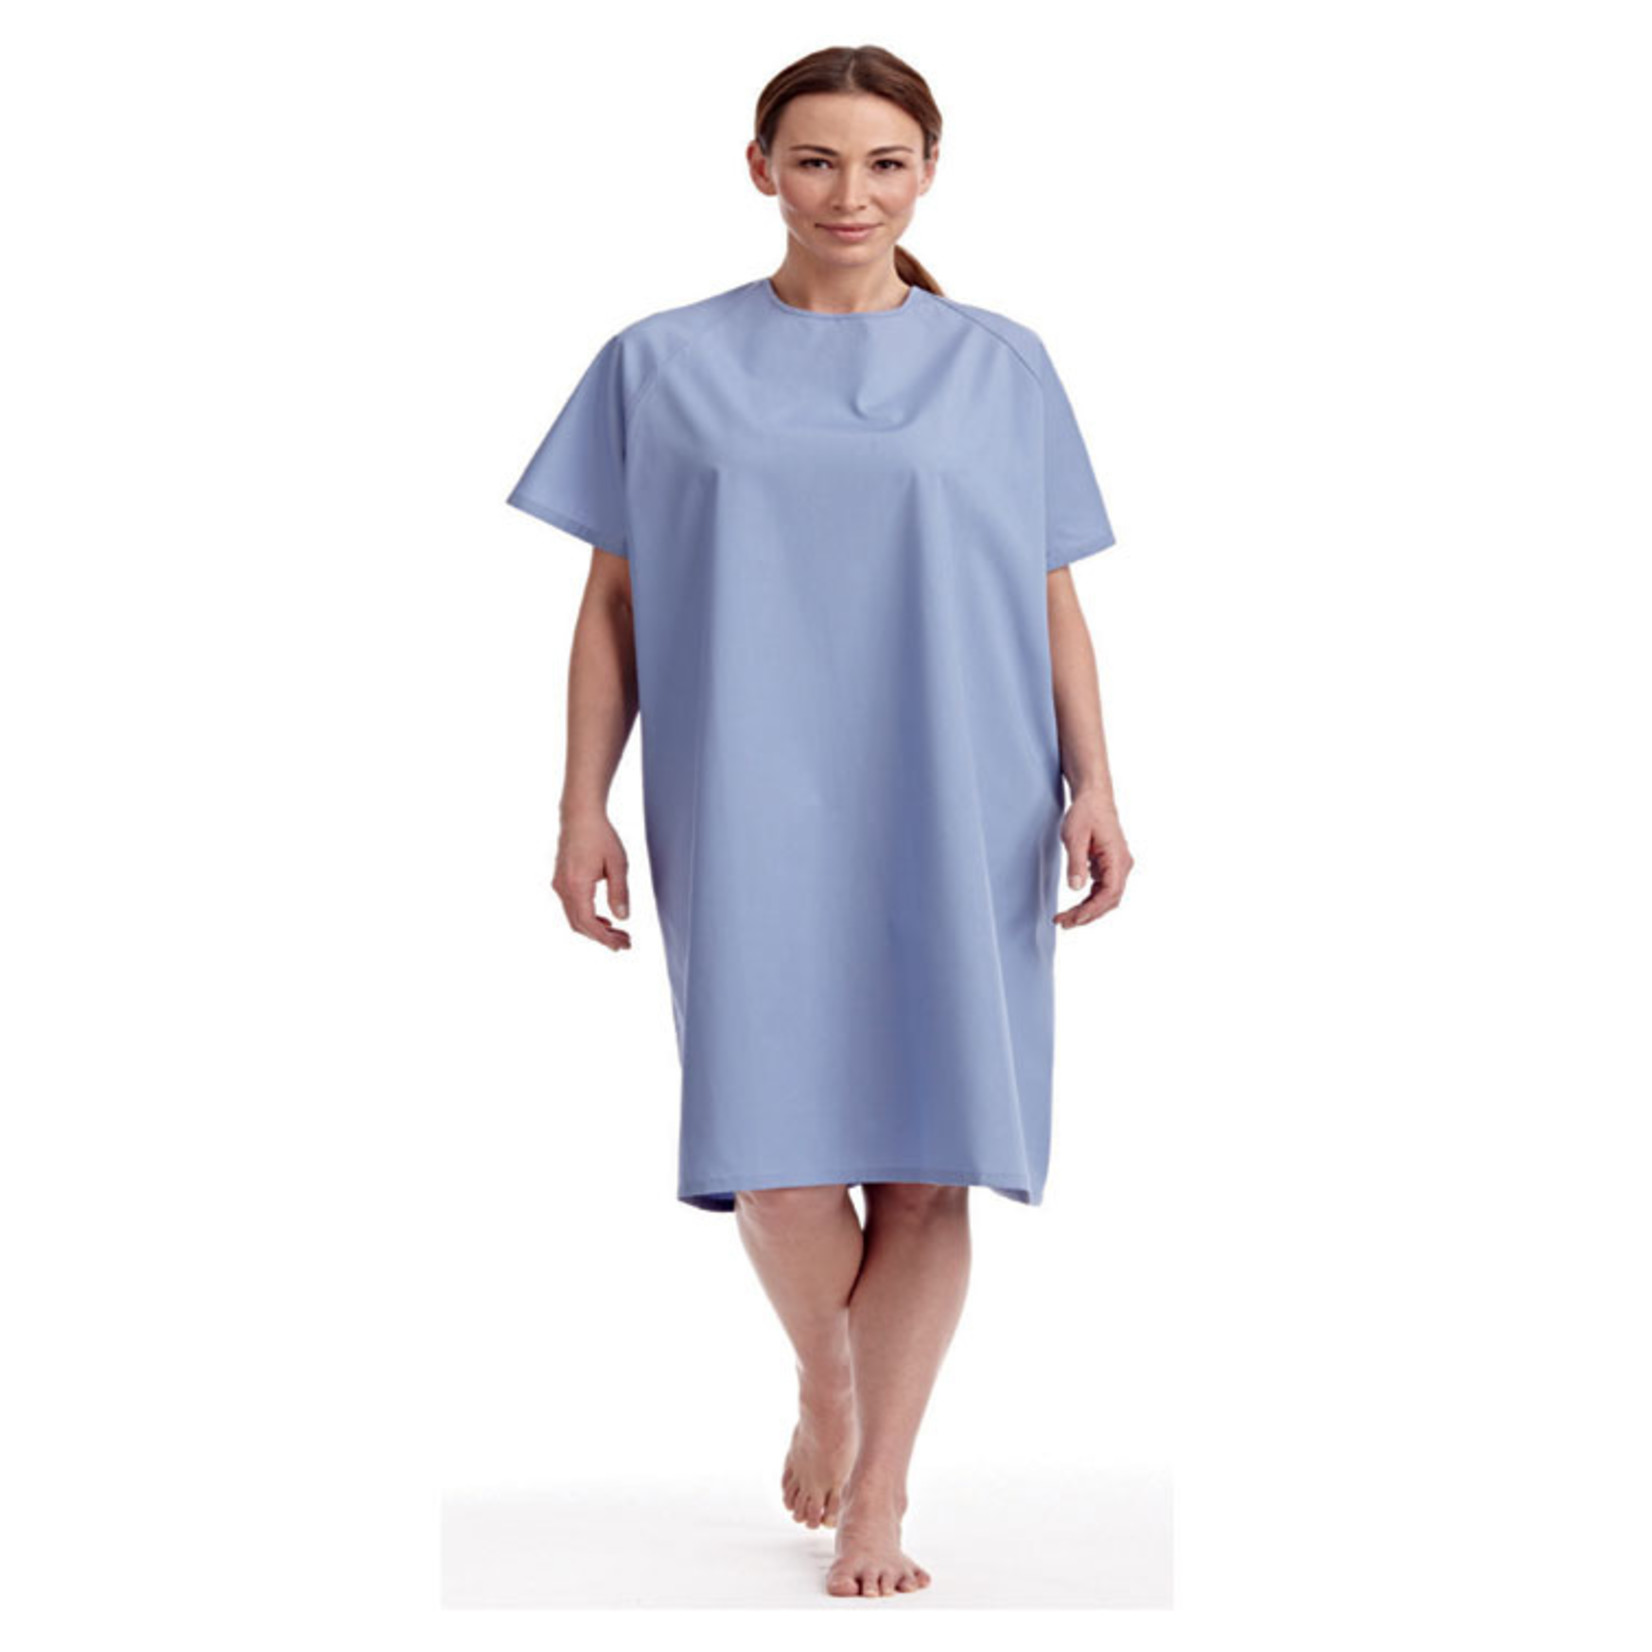 MOBB Hospital Gown